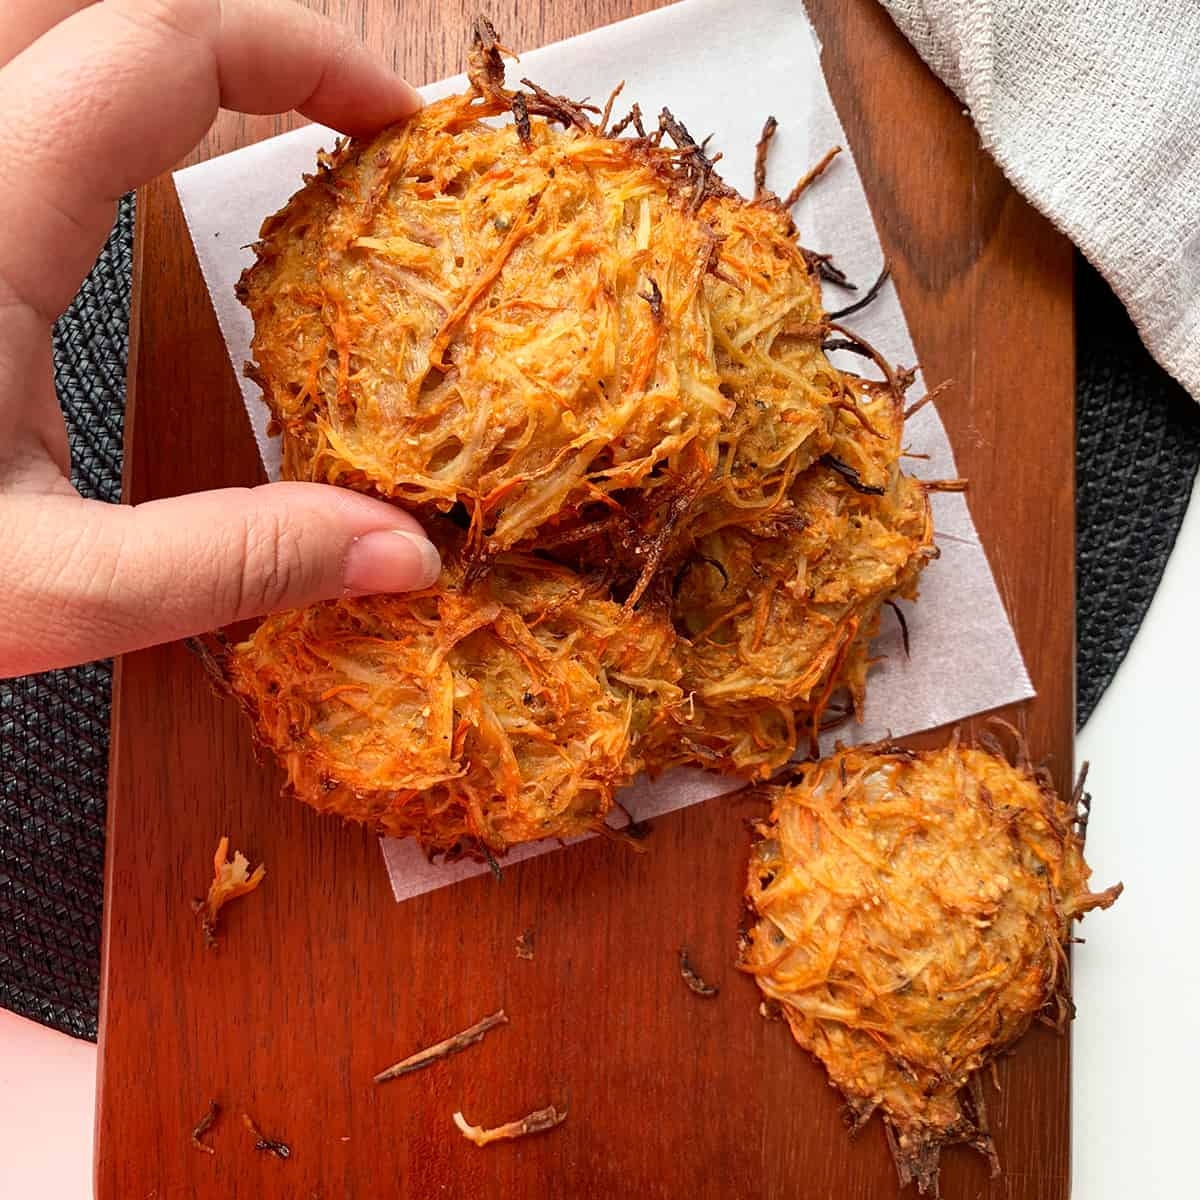 Vegan hash browns in a hand